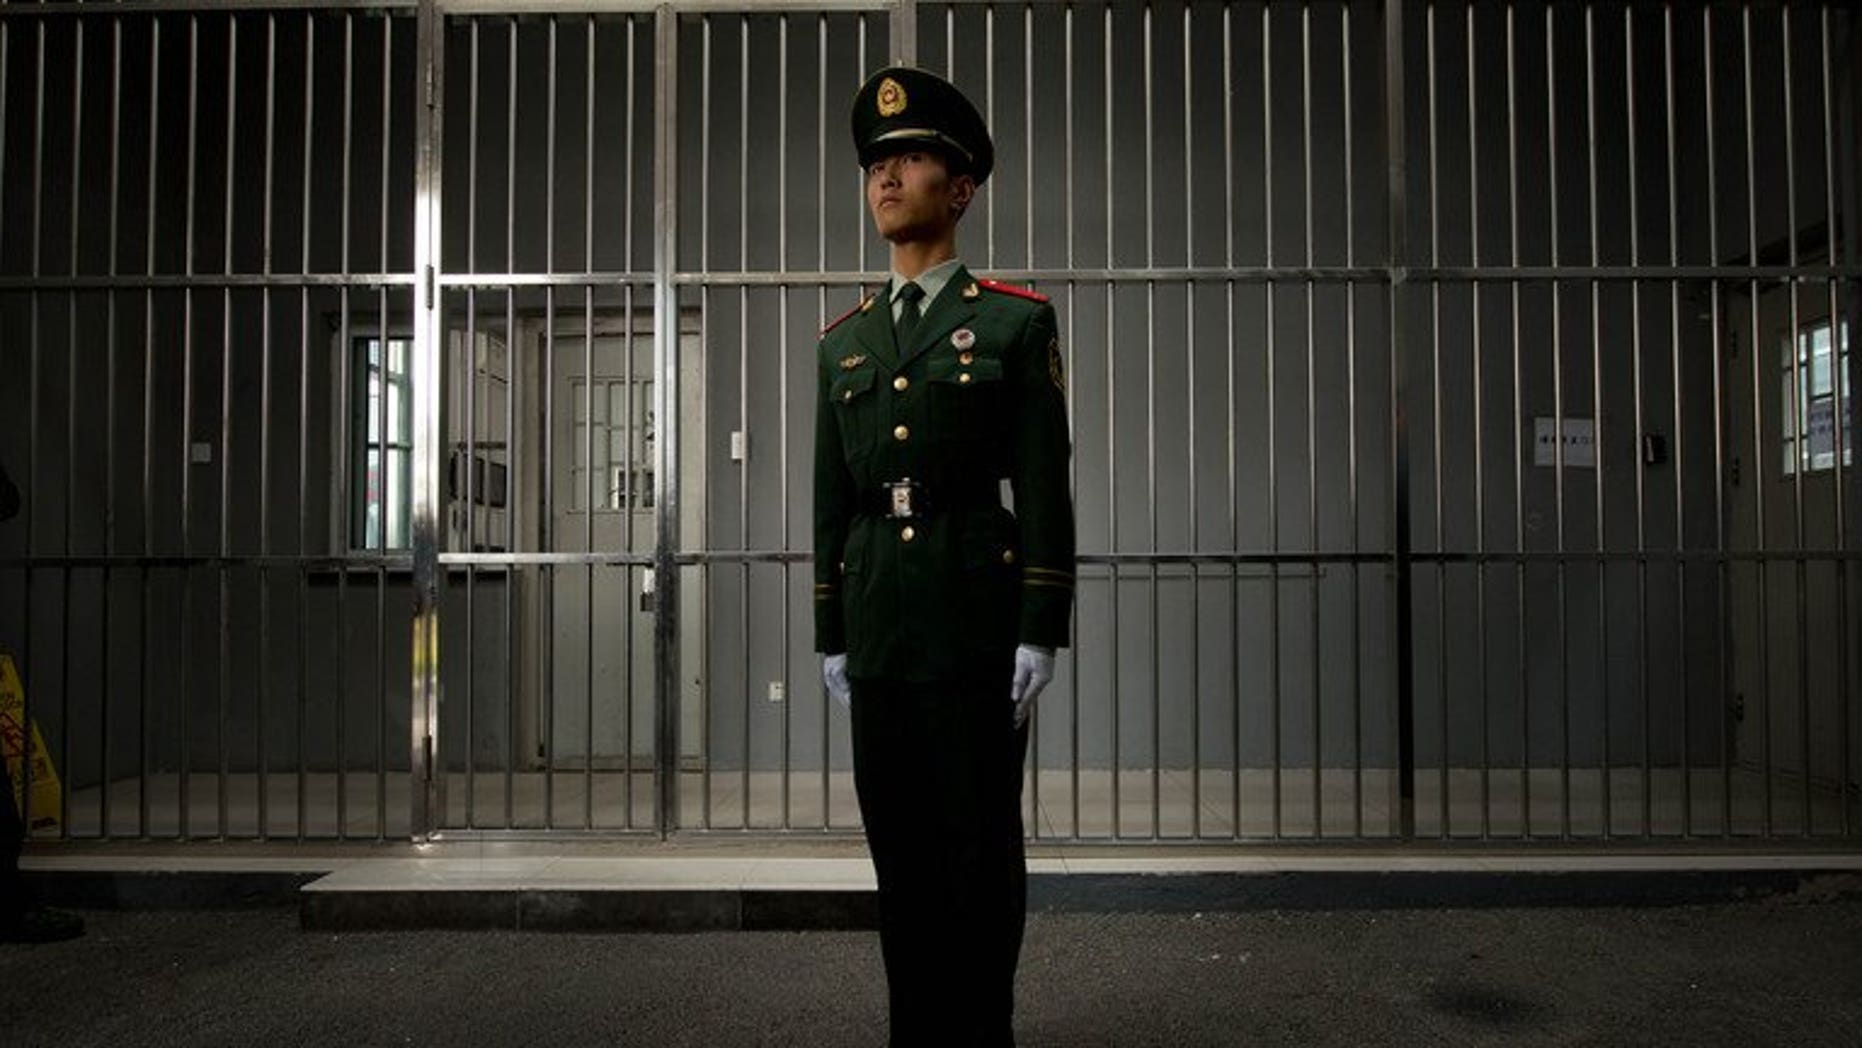 A paramilitary guard stands before the bars of a main gate to the No.1 Detention Center during a government guided tour in Beijing on October 25, 2012. China put to death a Filipina drug trafficker Wednesday, the Philippine foreign department said, after Beijing ignored Manila's request to spare her life.